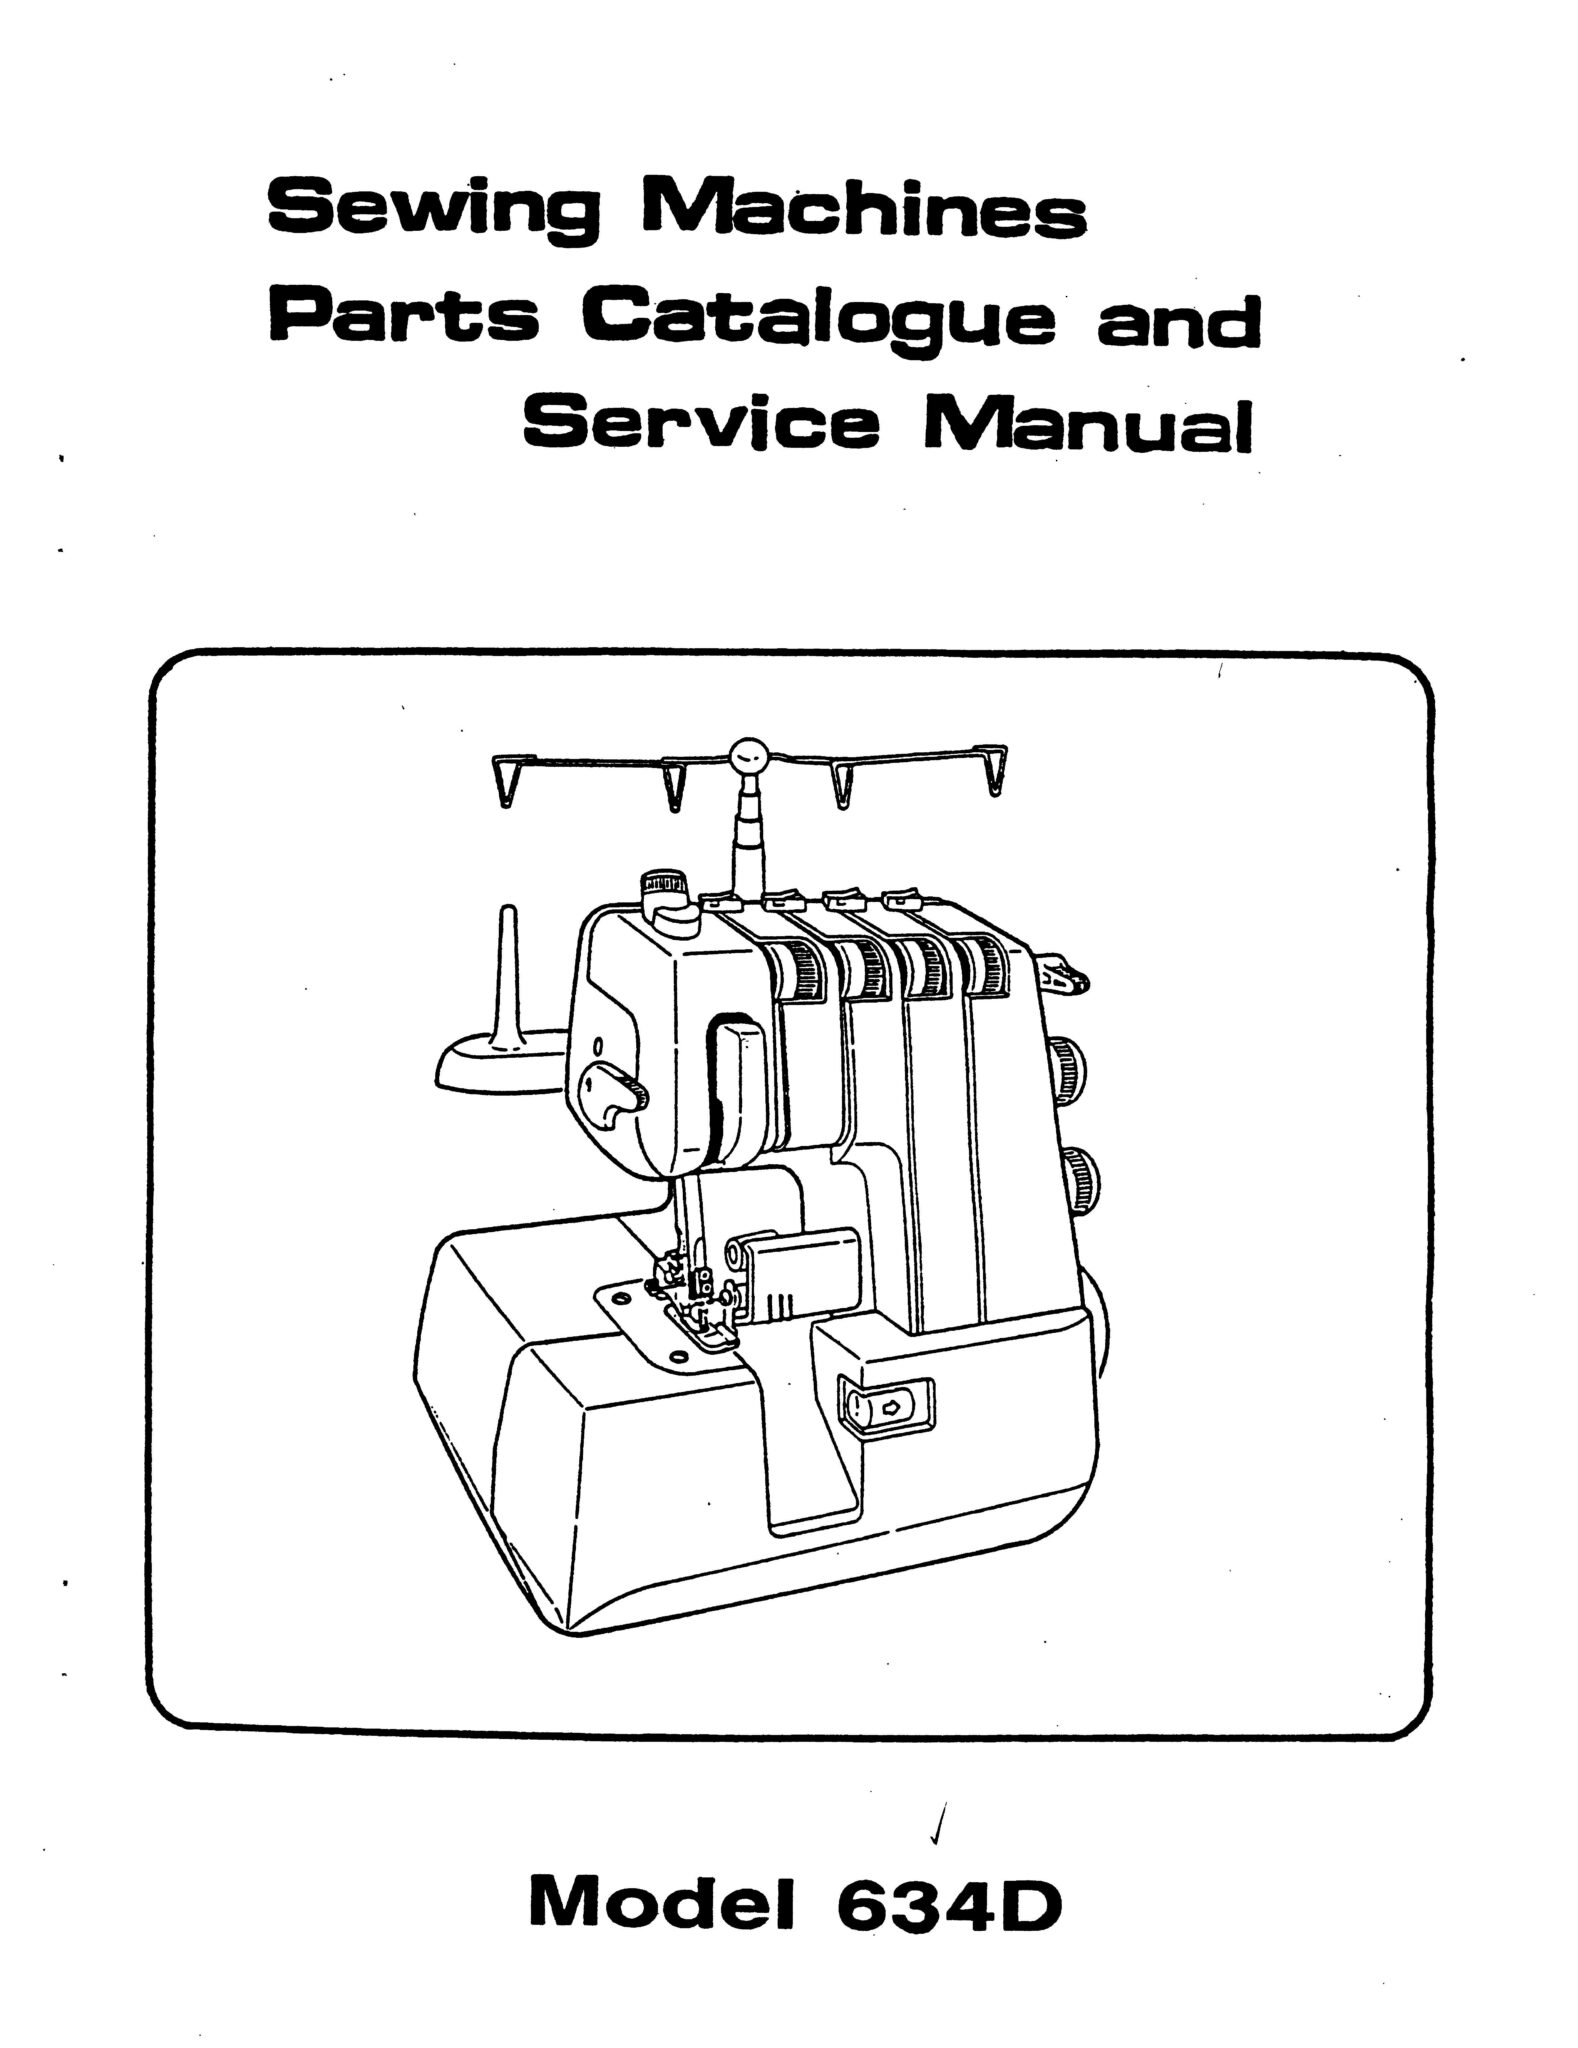 Service Manual & Parts List White 634D Seger Sewing Machine